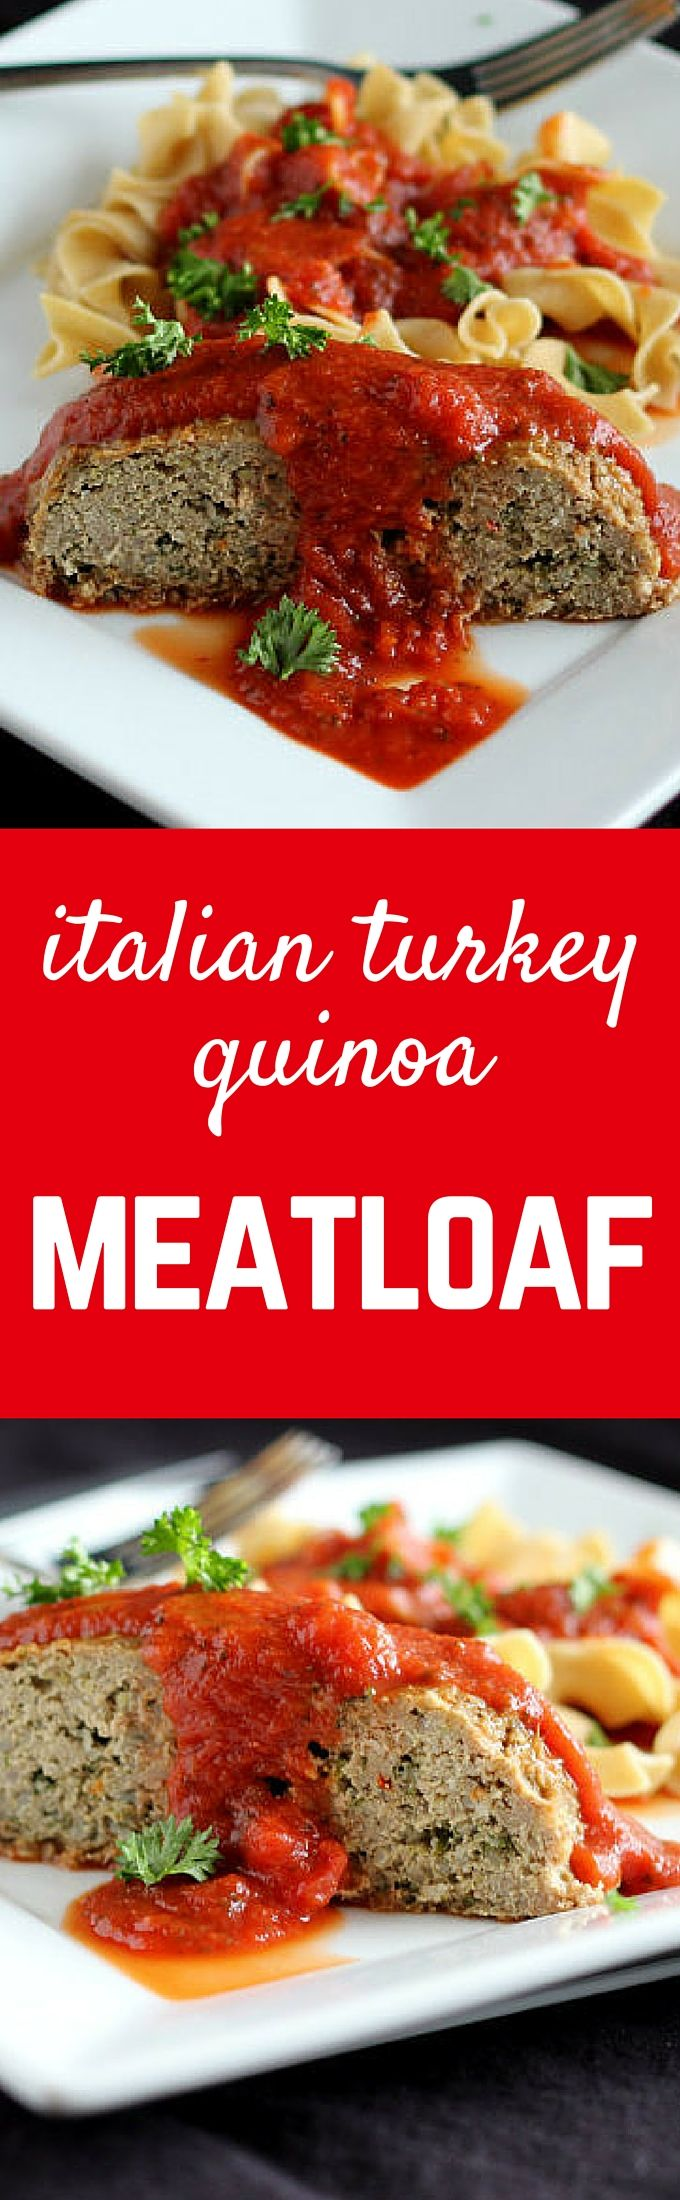 You'll love this heart-healthy Italian Turkey Quinoa Meatloaf! You might never go back to using breadcrumbs. Get the healthy main dish recipe on RachelCooks.com!